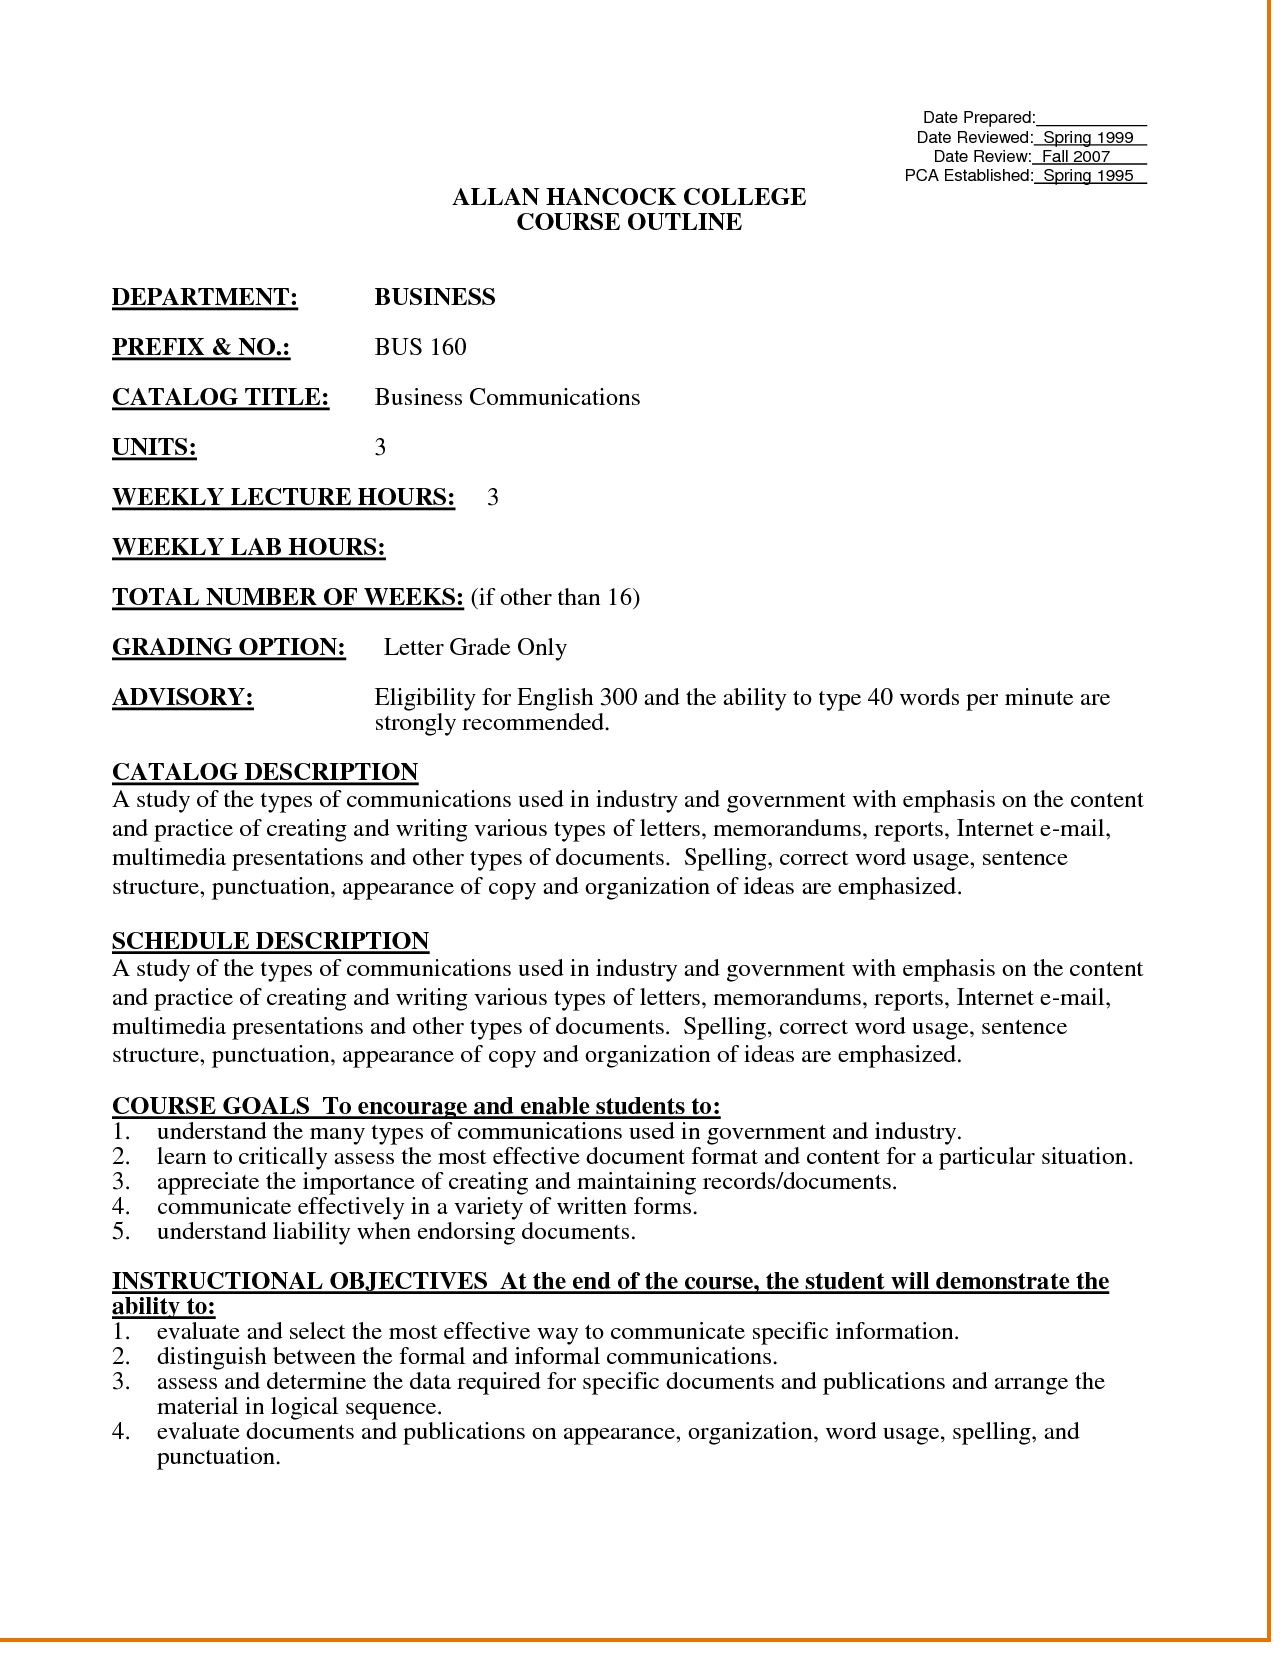 Resume Cover Letter Examples   One Stop Destination For All Types Of Free  Sample Resume Cover Letters. The Cover Letter For Resume Strengthens Your  Resume ...  Resume Hot Words